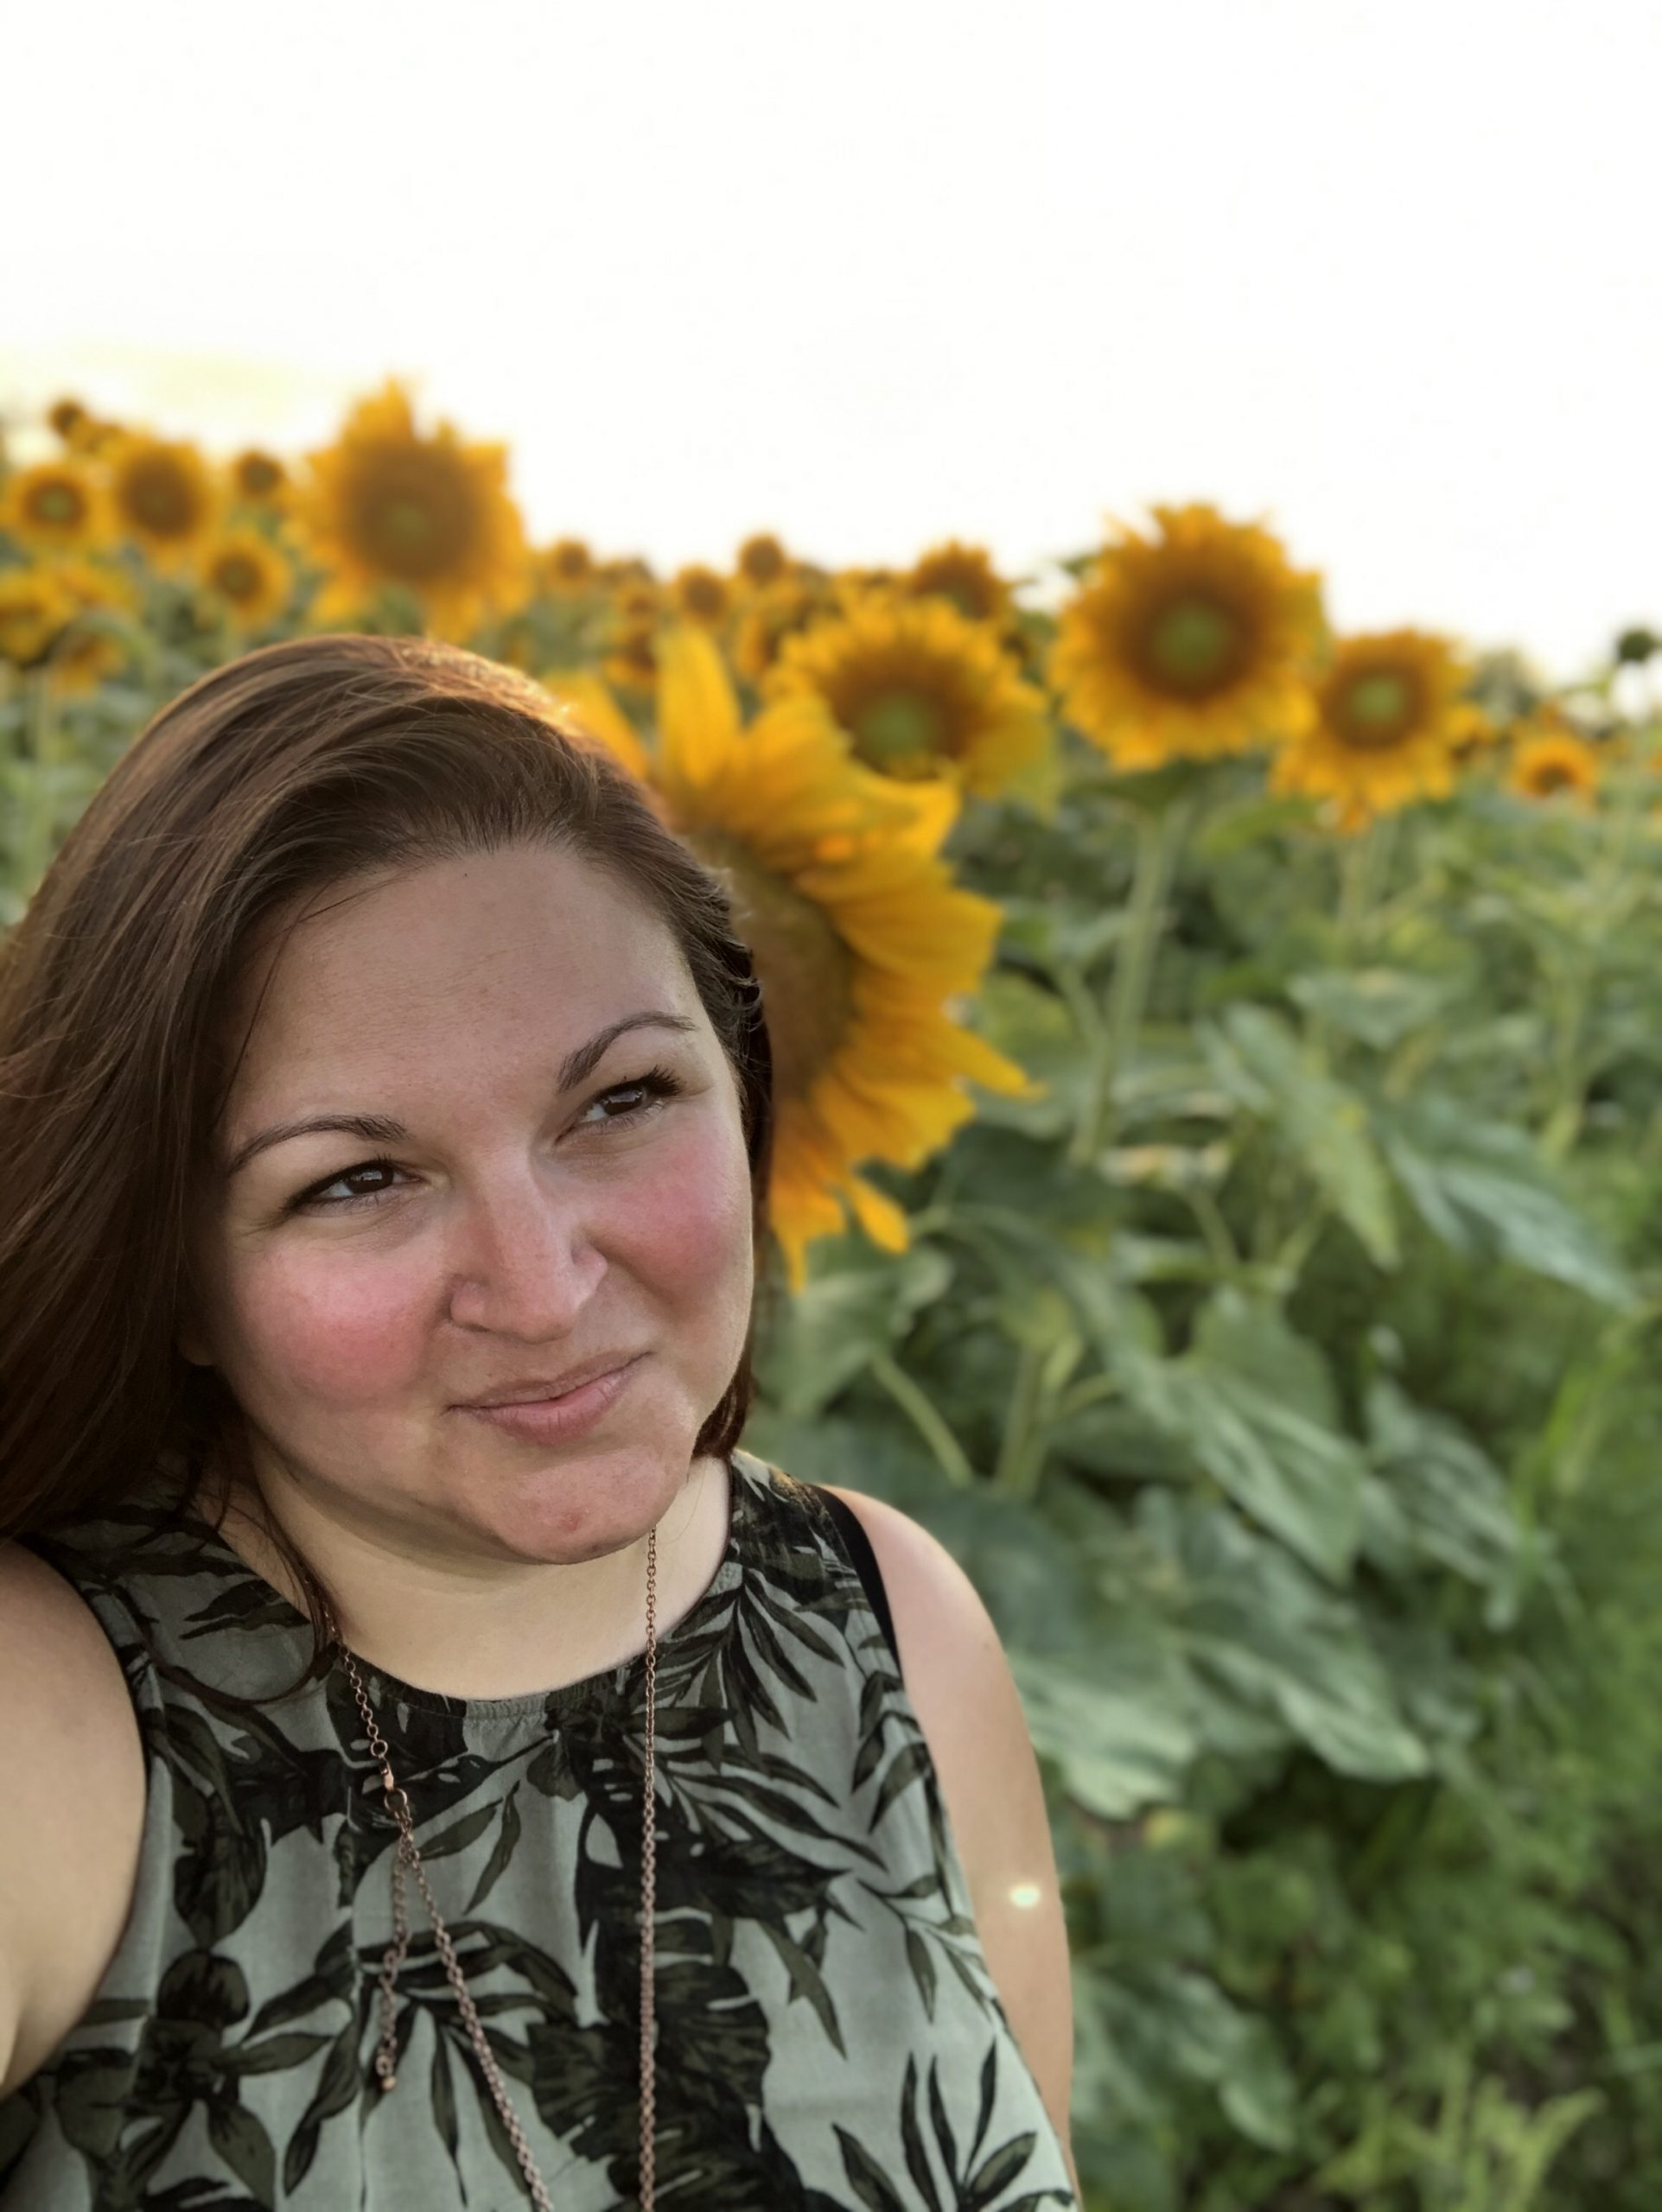 Dani with Sunflowers